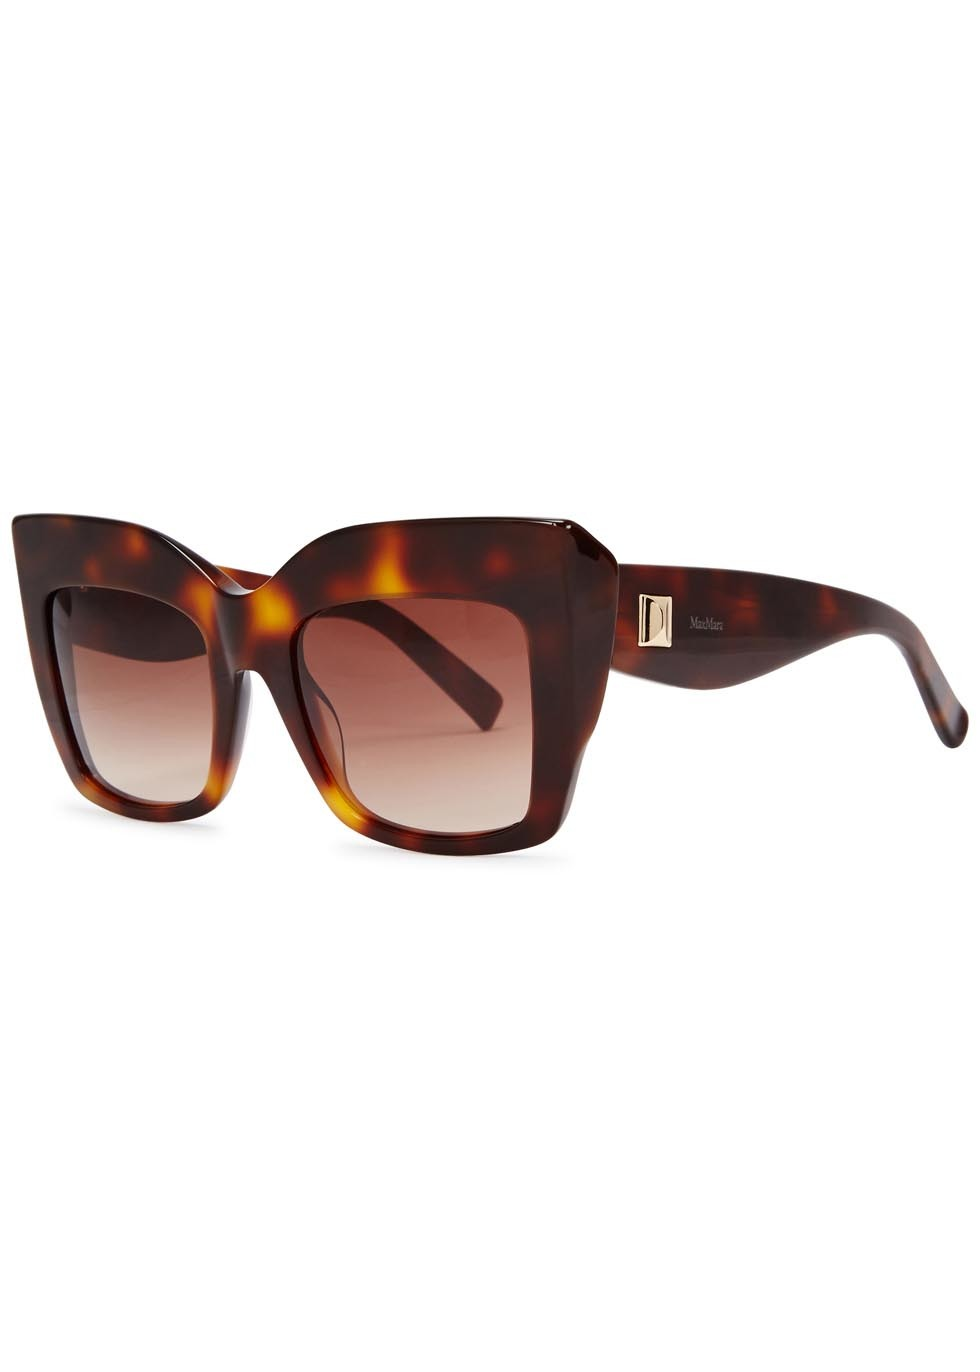 Tortoiseshell Square Frame Sunglasses - predominant colour: chocolate brown; occasions: casual, holiday; style: square; size: large; material: plastic/rubber; pattern: tortoiseshell; finish: plain; season: a/w 2015; wardrobe: basic